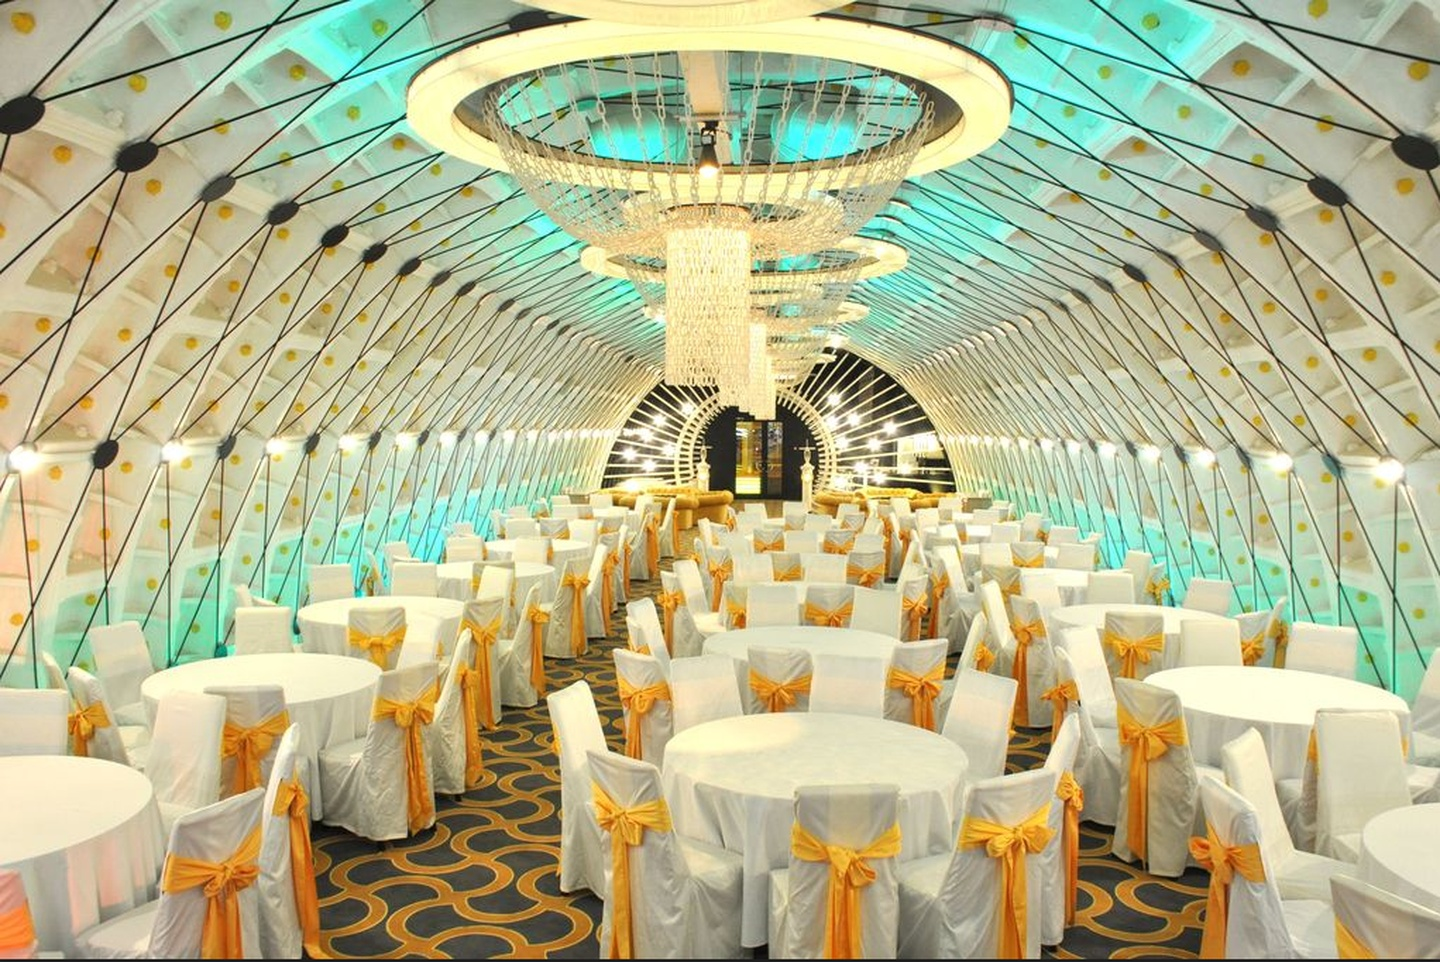 Rest of the World corporate event venues Historic venue Tagansky Bunker 42 - White Banquet Hall image 1